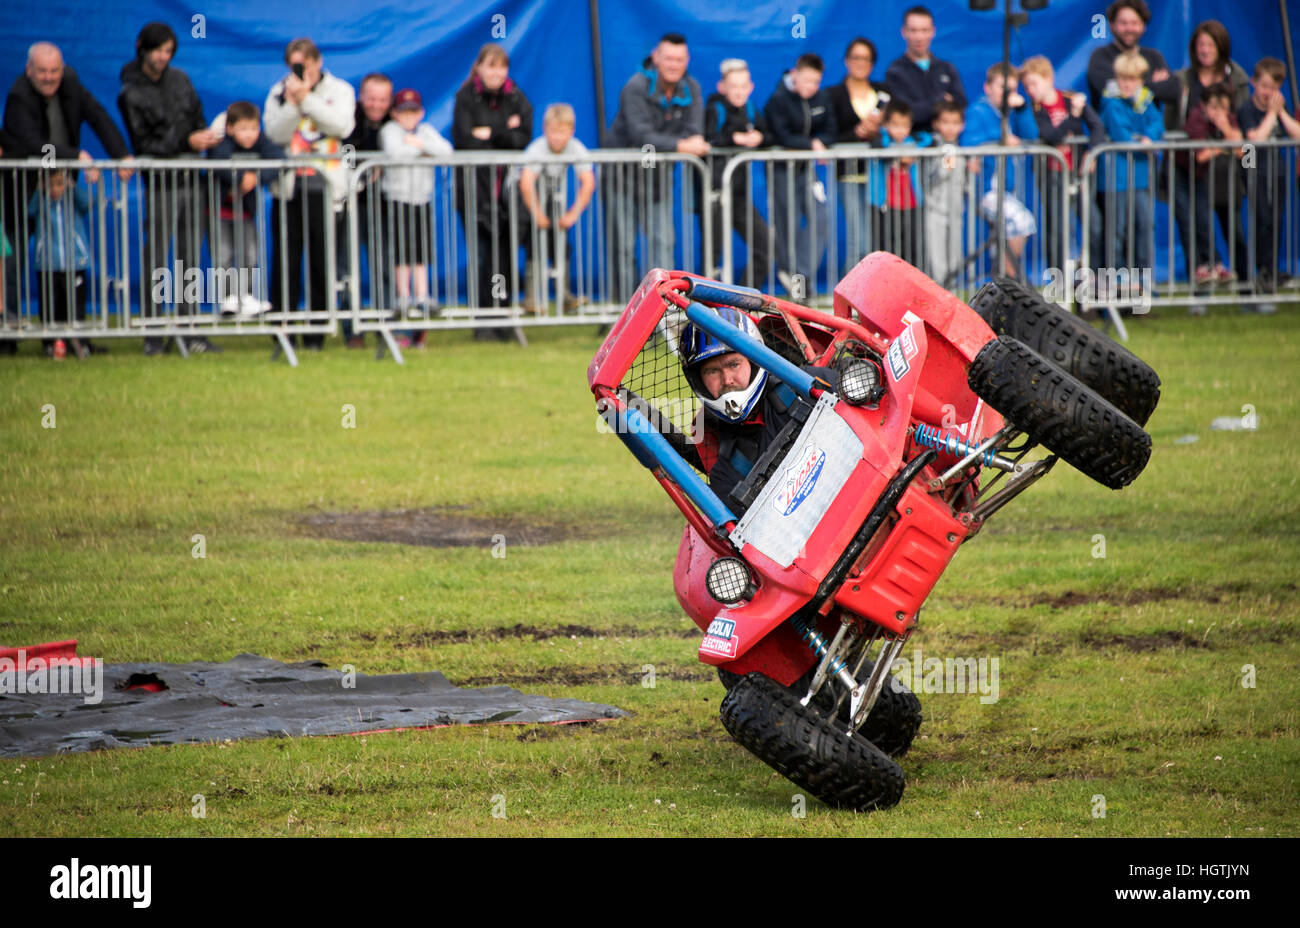 Car driver performing daring stunt with 2 wheels off the ground. - Stock Image